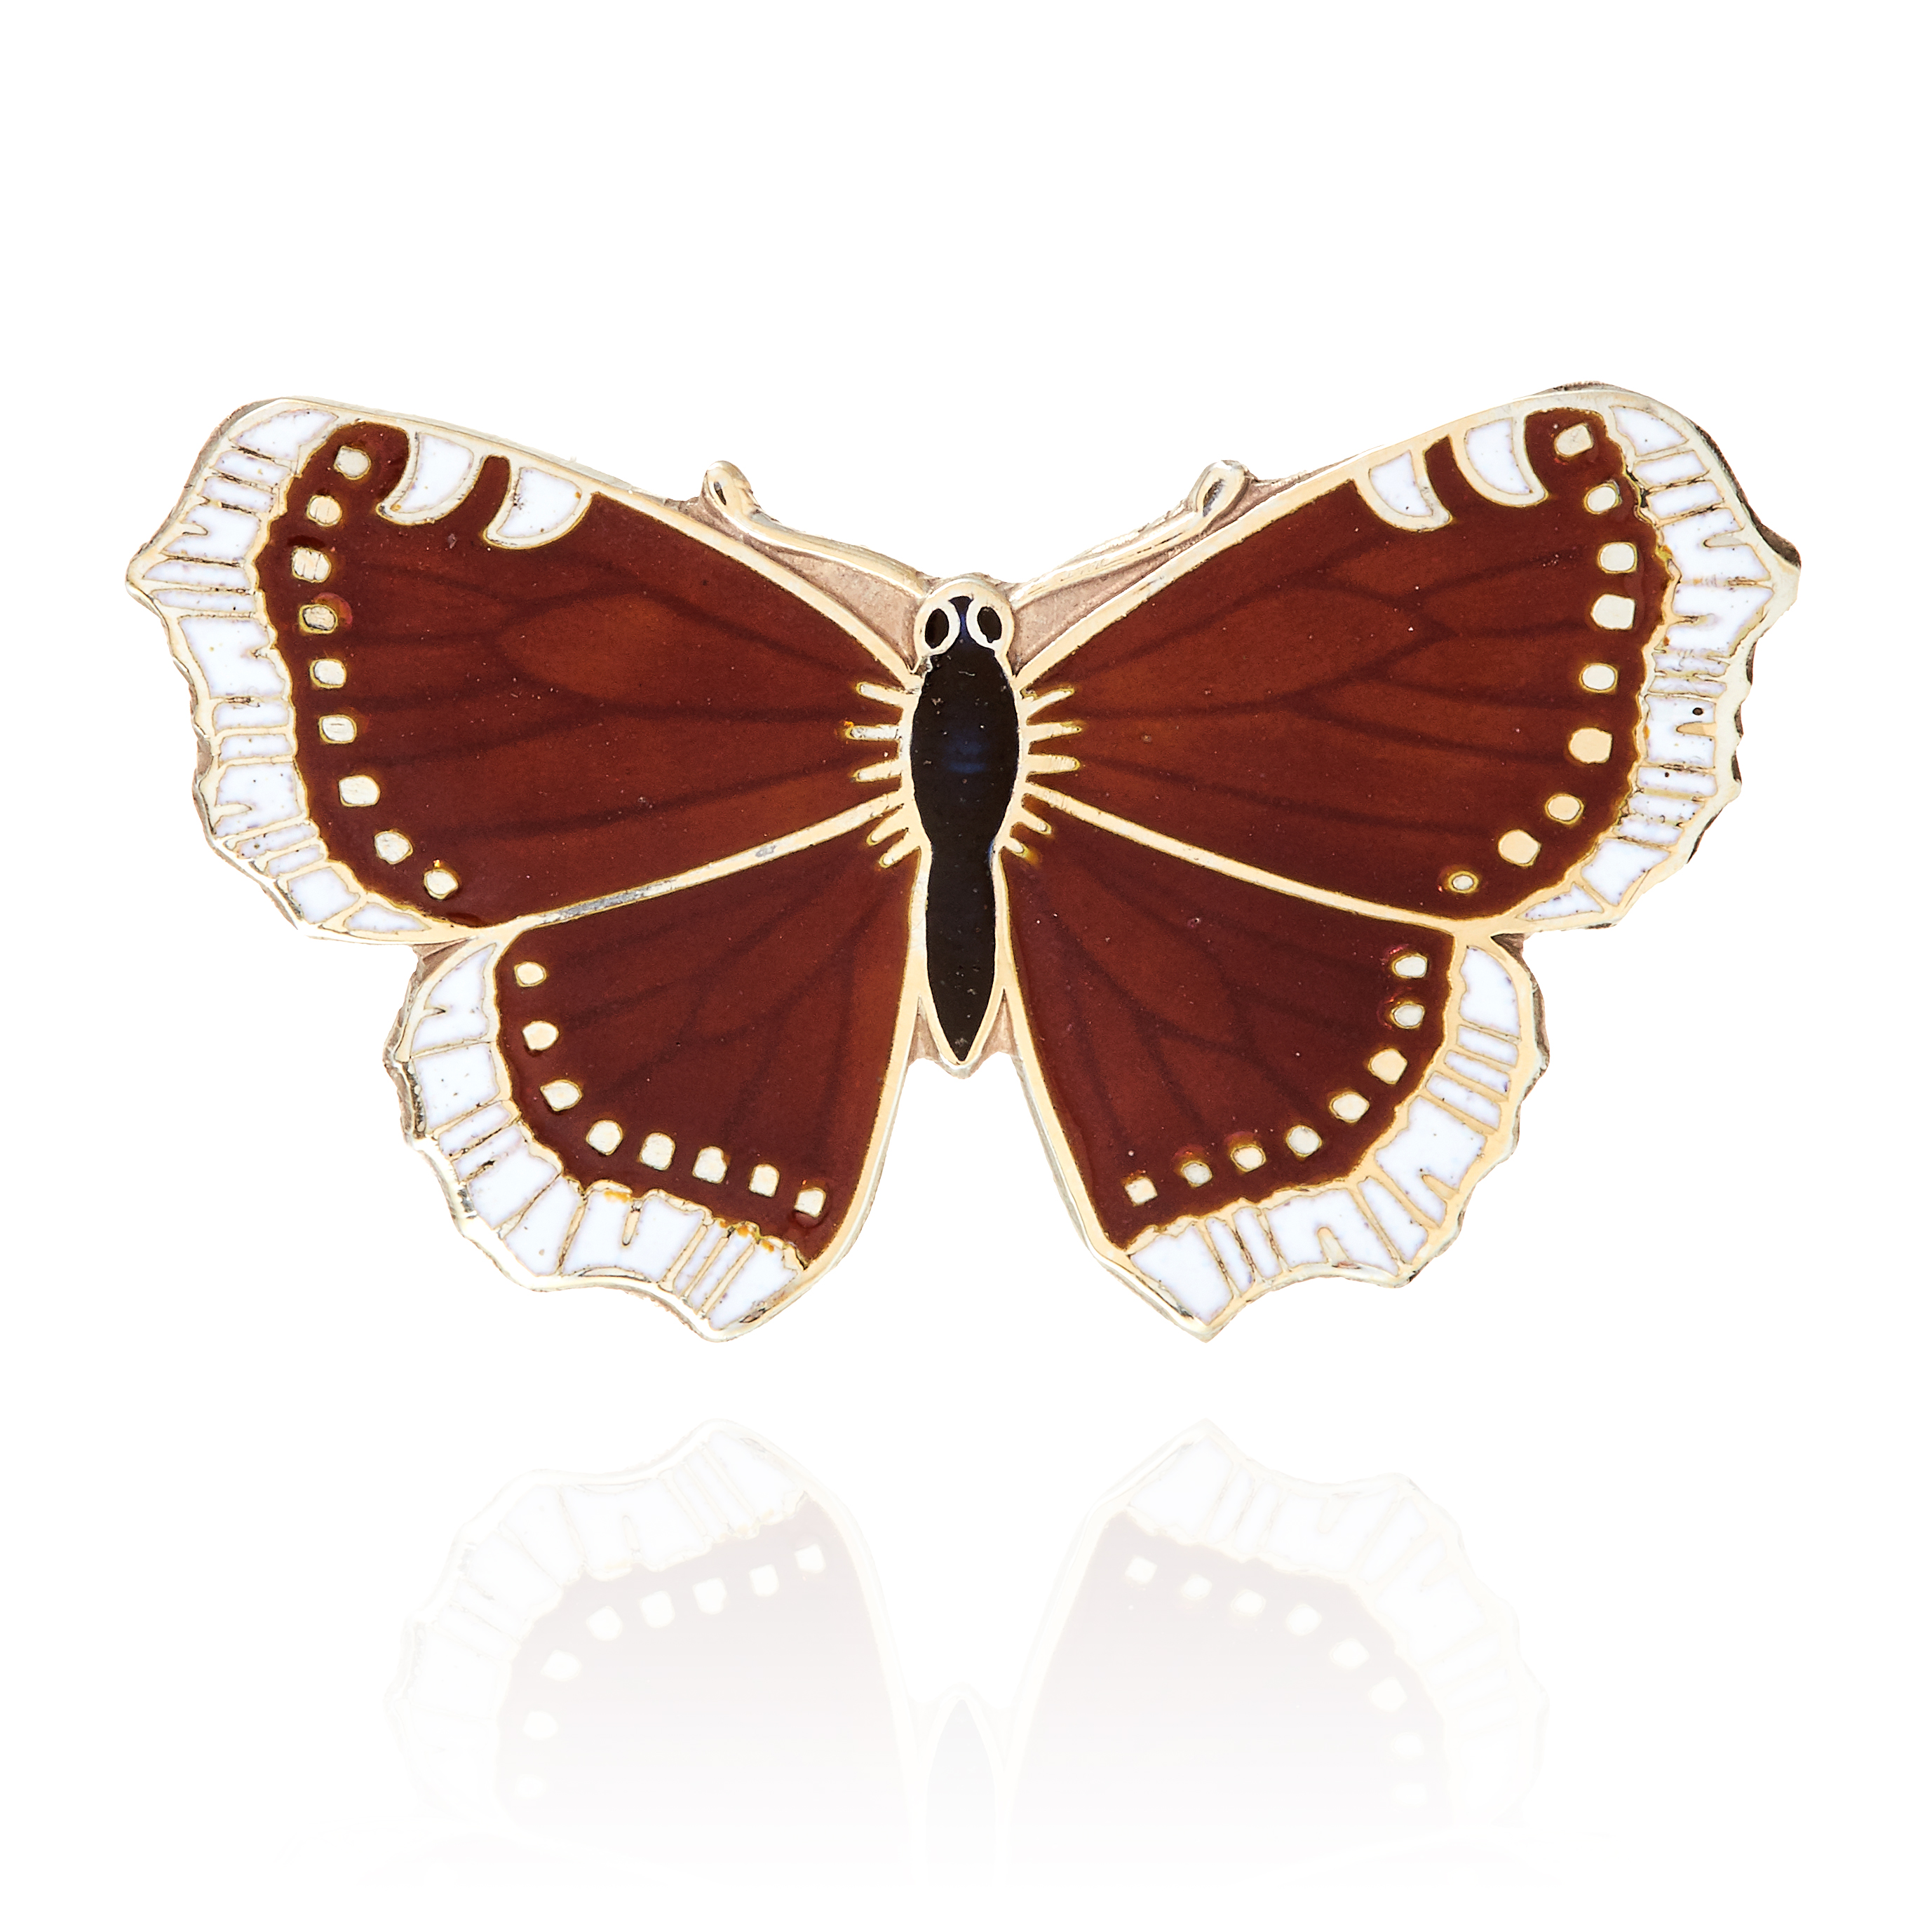 AN ANTIQUE ENAMELLED BUTTERFLY BROOCH in sterling silver, designed as a butterfly, its body